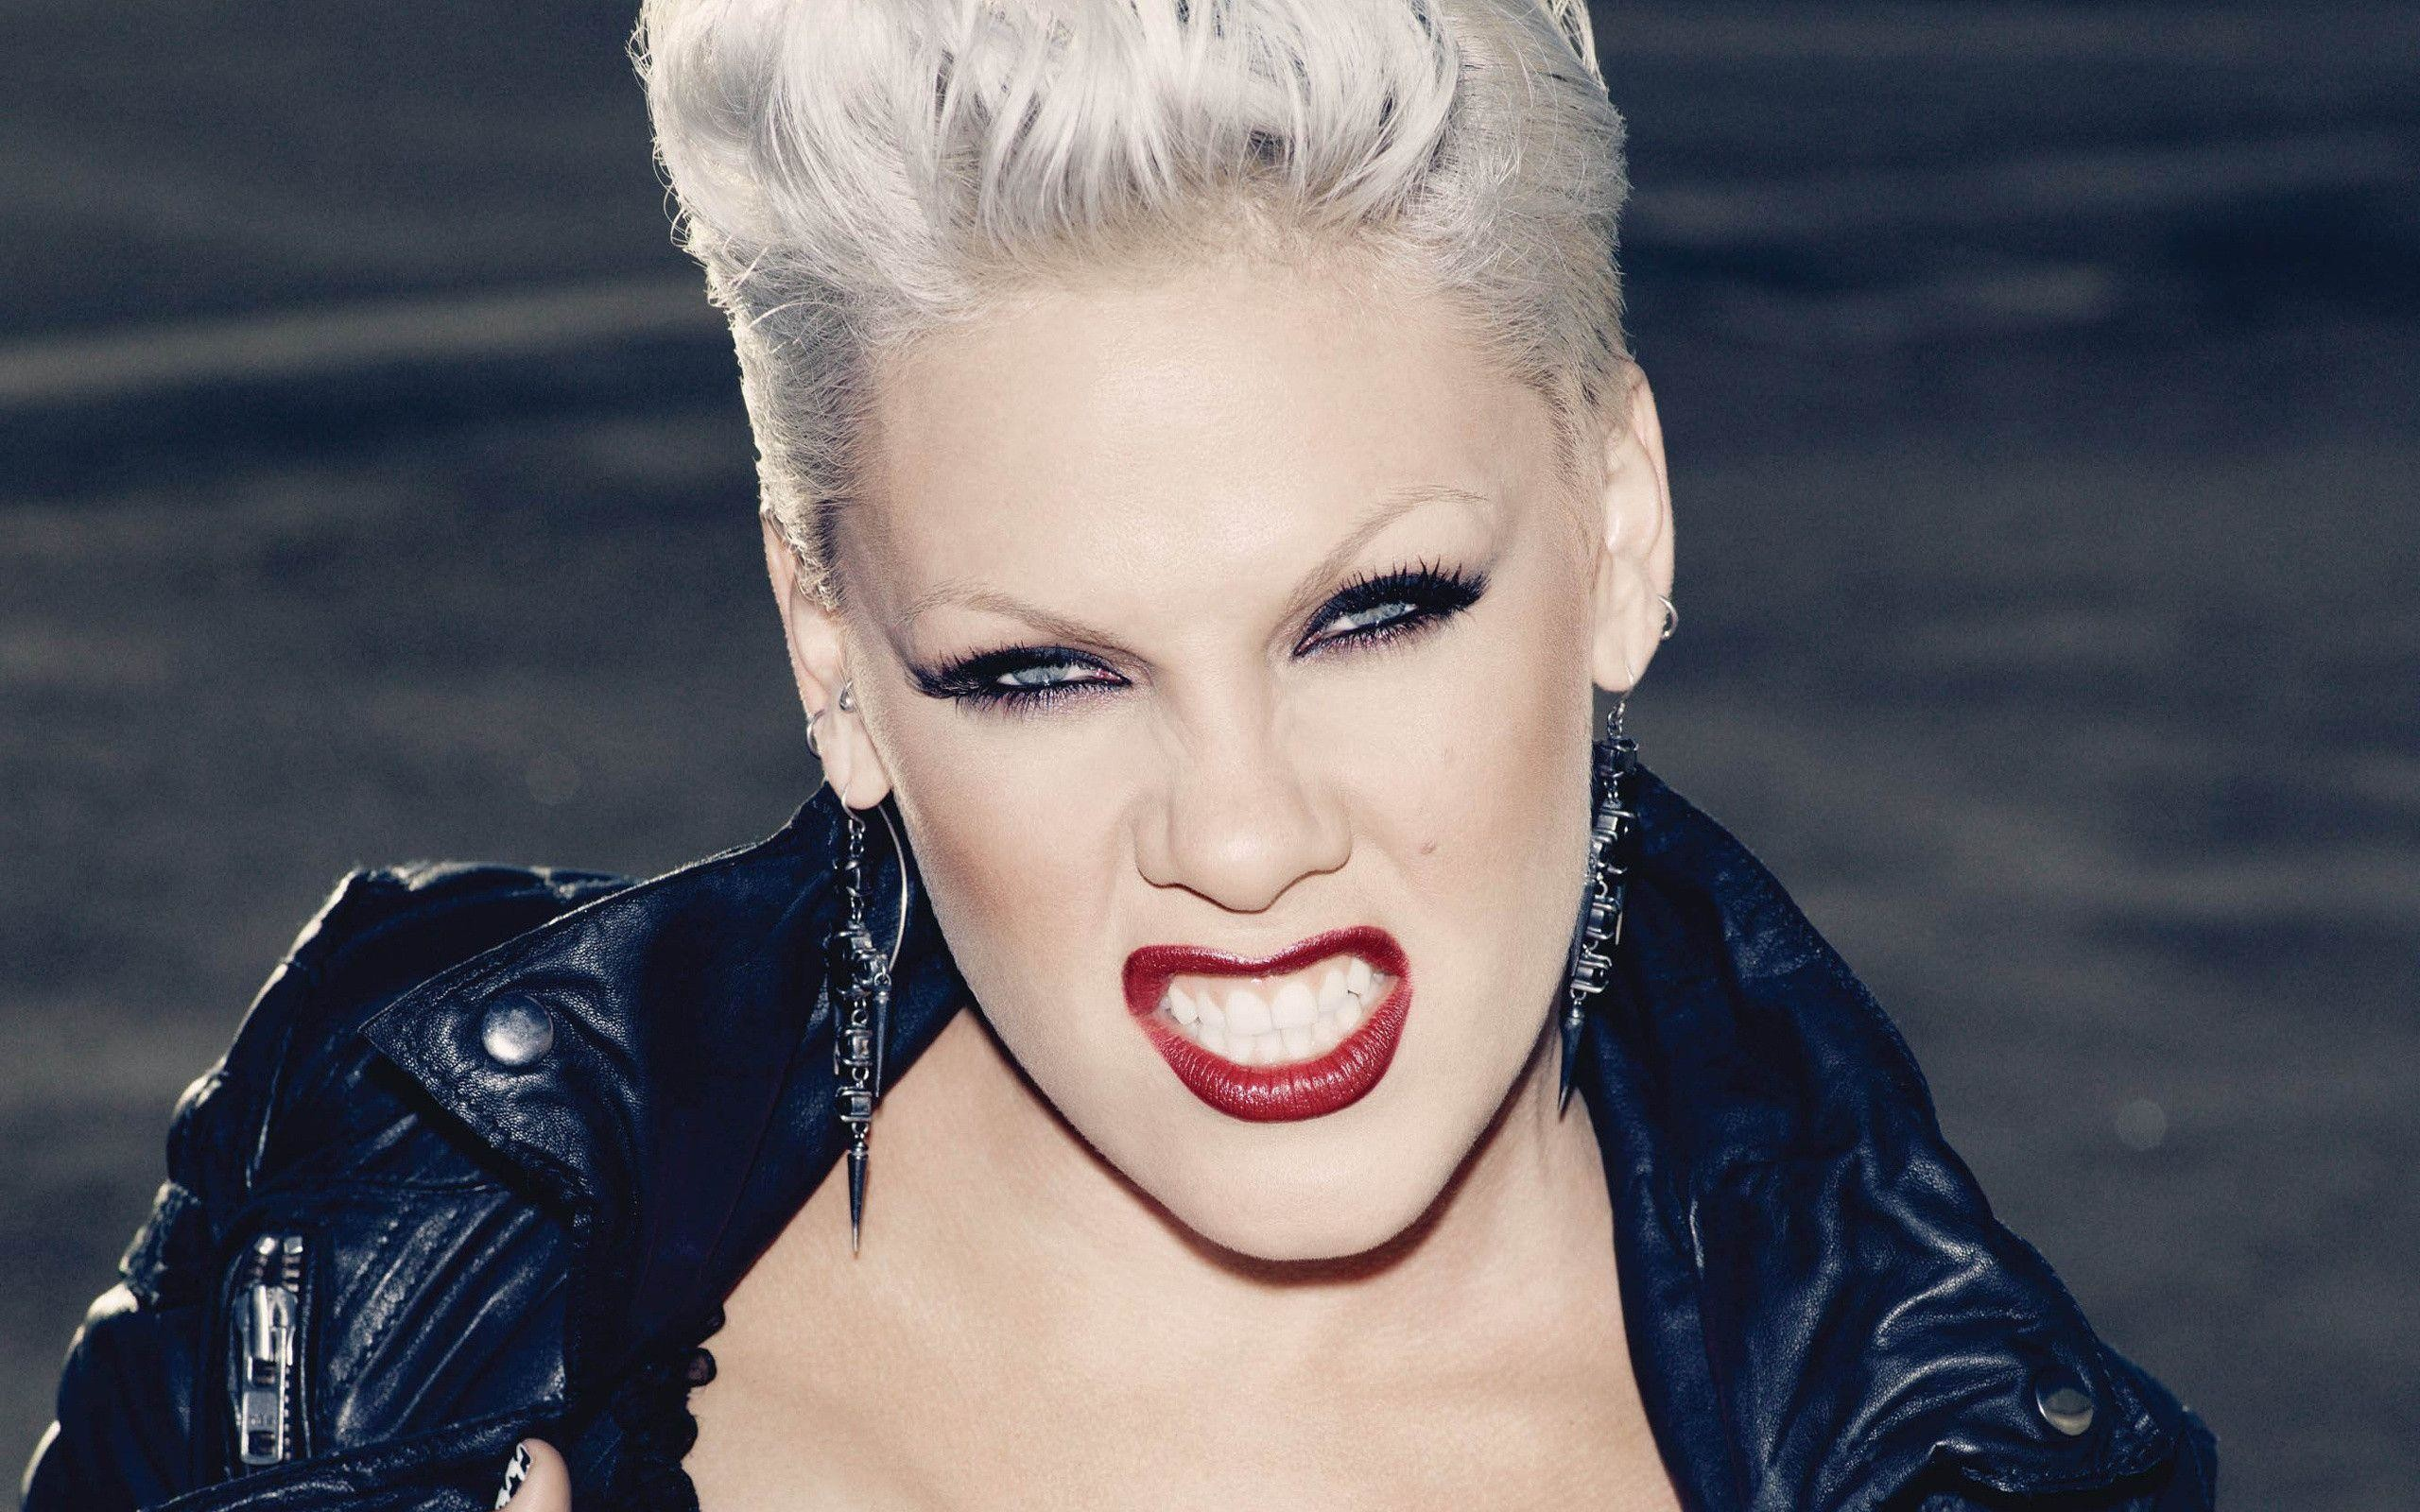 Pink singer wallpaper hd